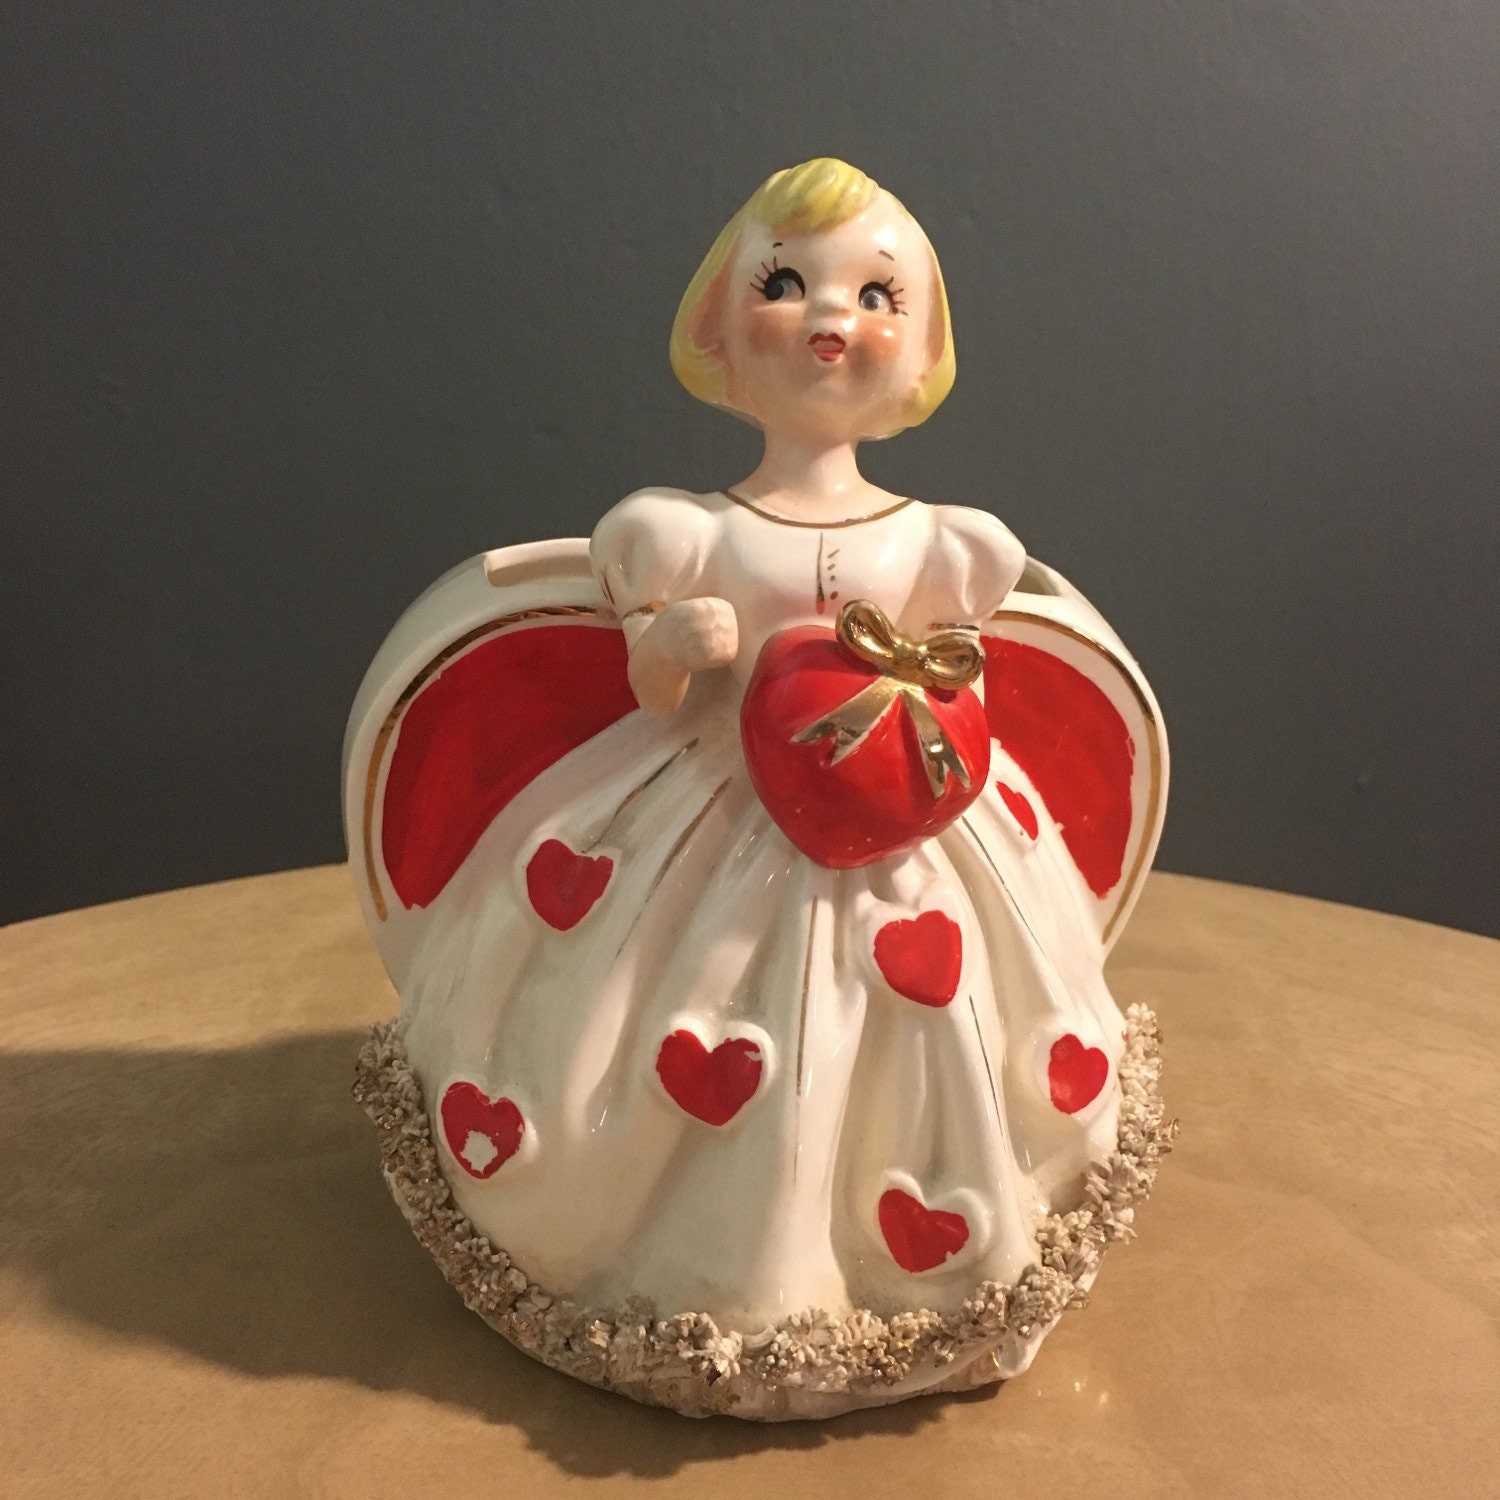 1950s Rb Valentine Girl Planter With Spaghetti Trim